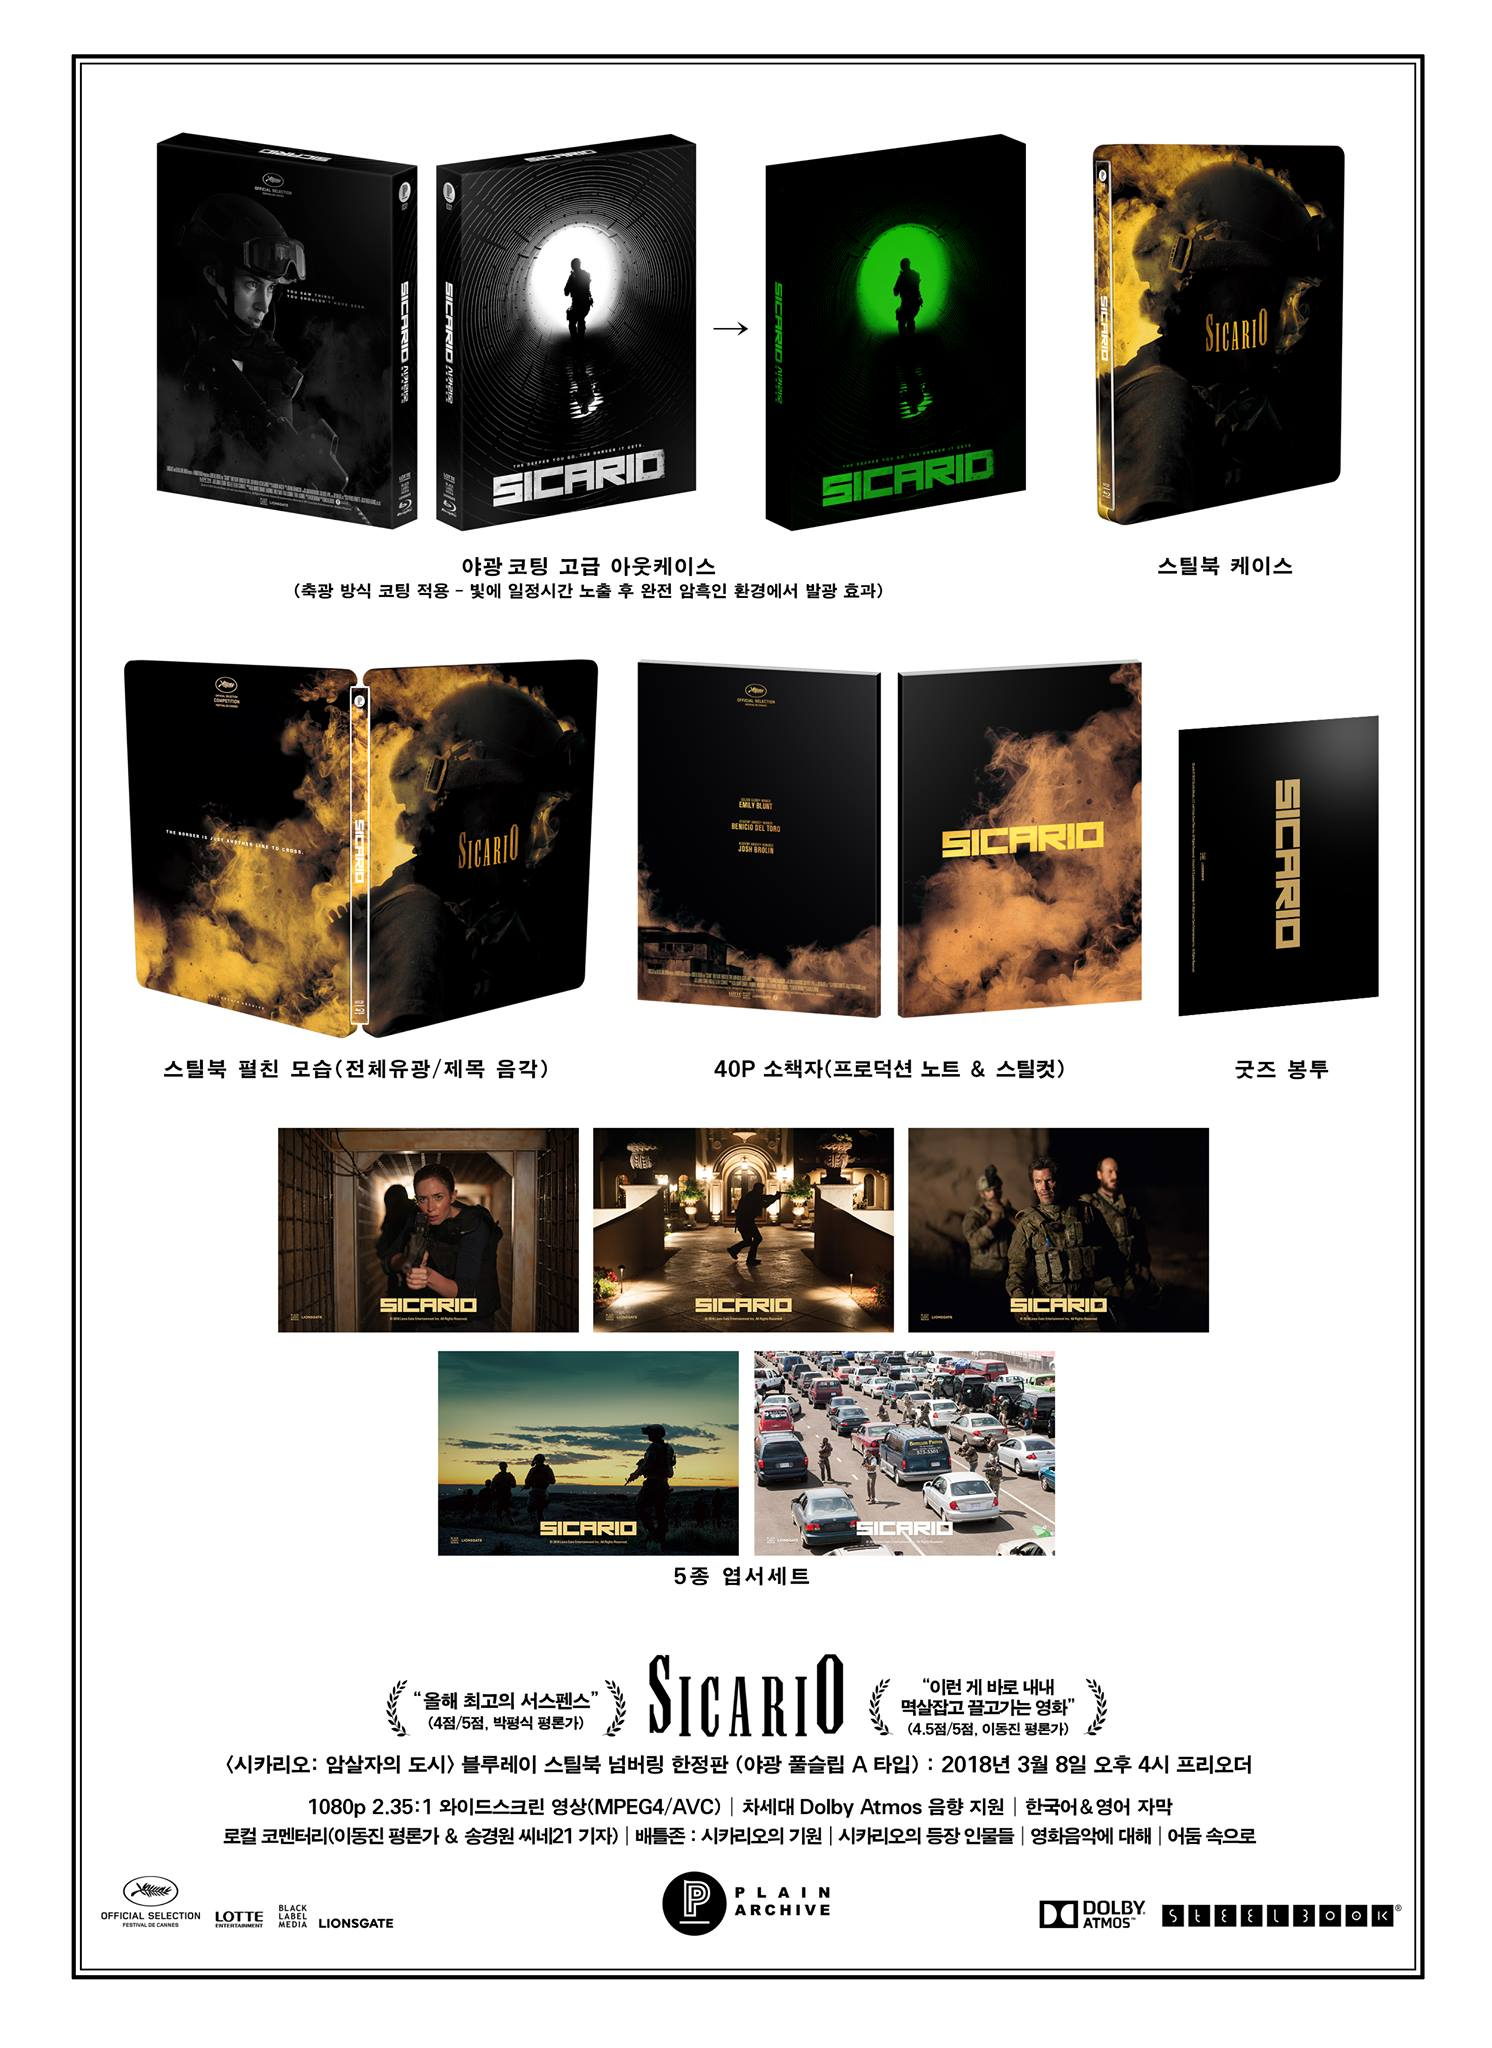 Sicario steelbook plain archive 1